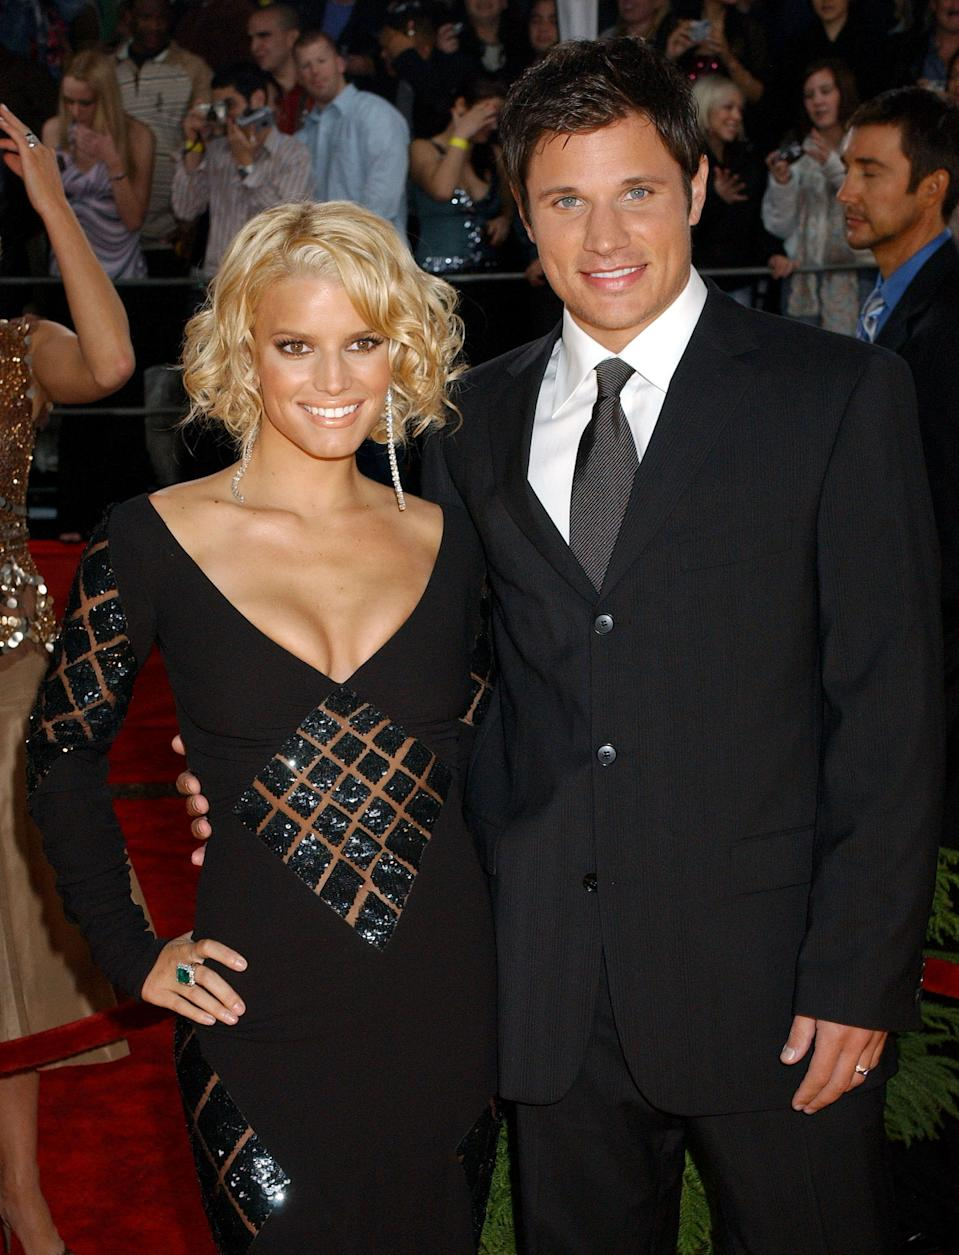 "<p>Simpson and Lachey's careers skyrocketed after the pair tied the knot in 2003. Their successful MTV reality show, ""The Newlyweds"" spawned ""I Love Lucy"" comparisons for the bubbly blonde and her boyband husband. The couple divorced in 2006. <em>(Image via Getty Images)</em></p>"